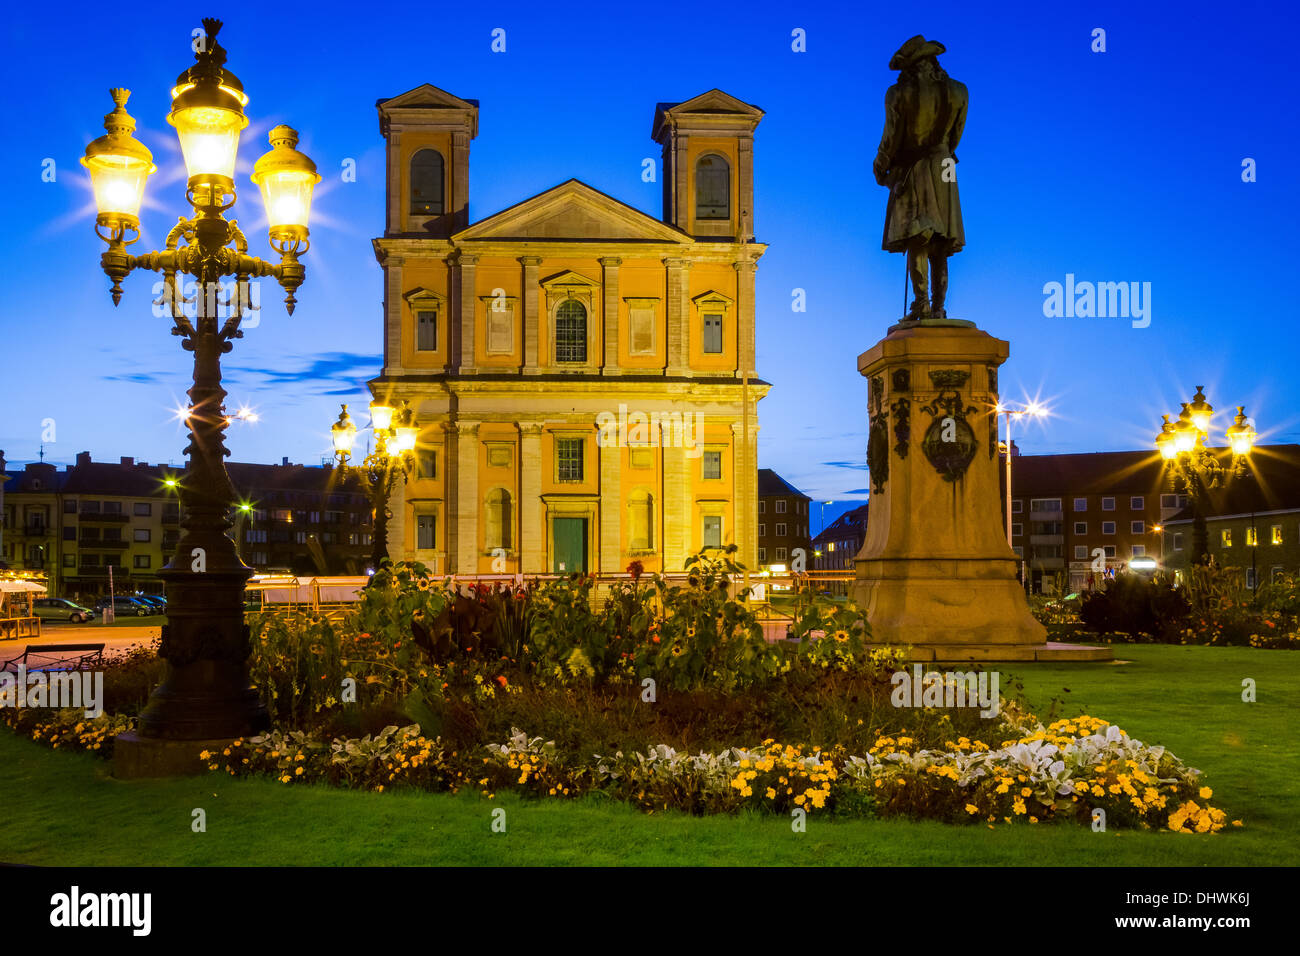 The Fredrikskyrkan church and statue of Carl XI on the Great Square in Karlskrona, Sweden - Stock Image